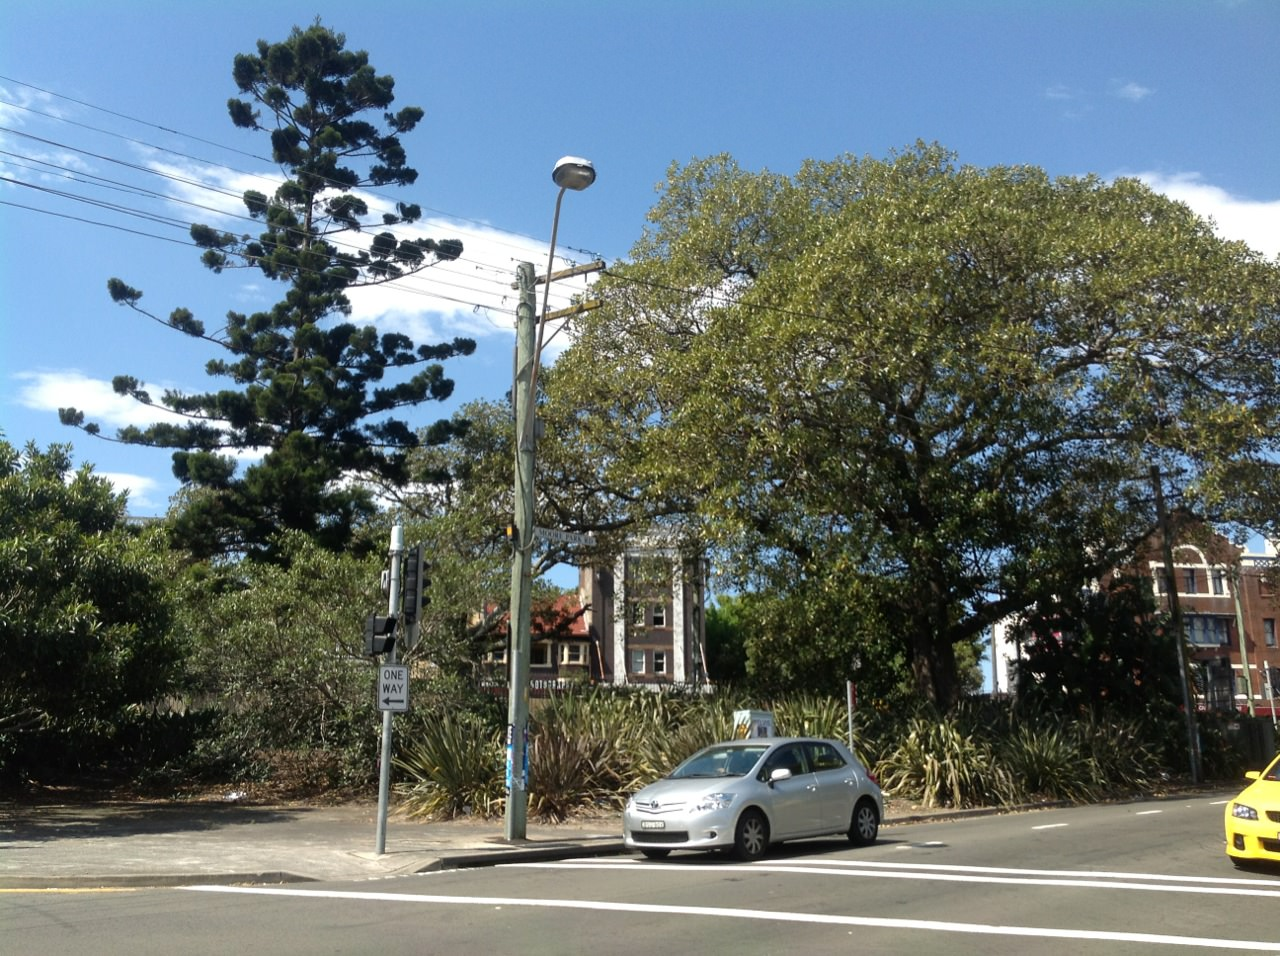 Moreton Bay Figs and Hoop Pine